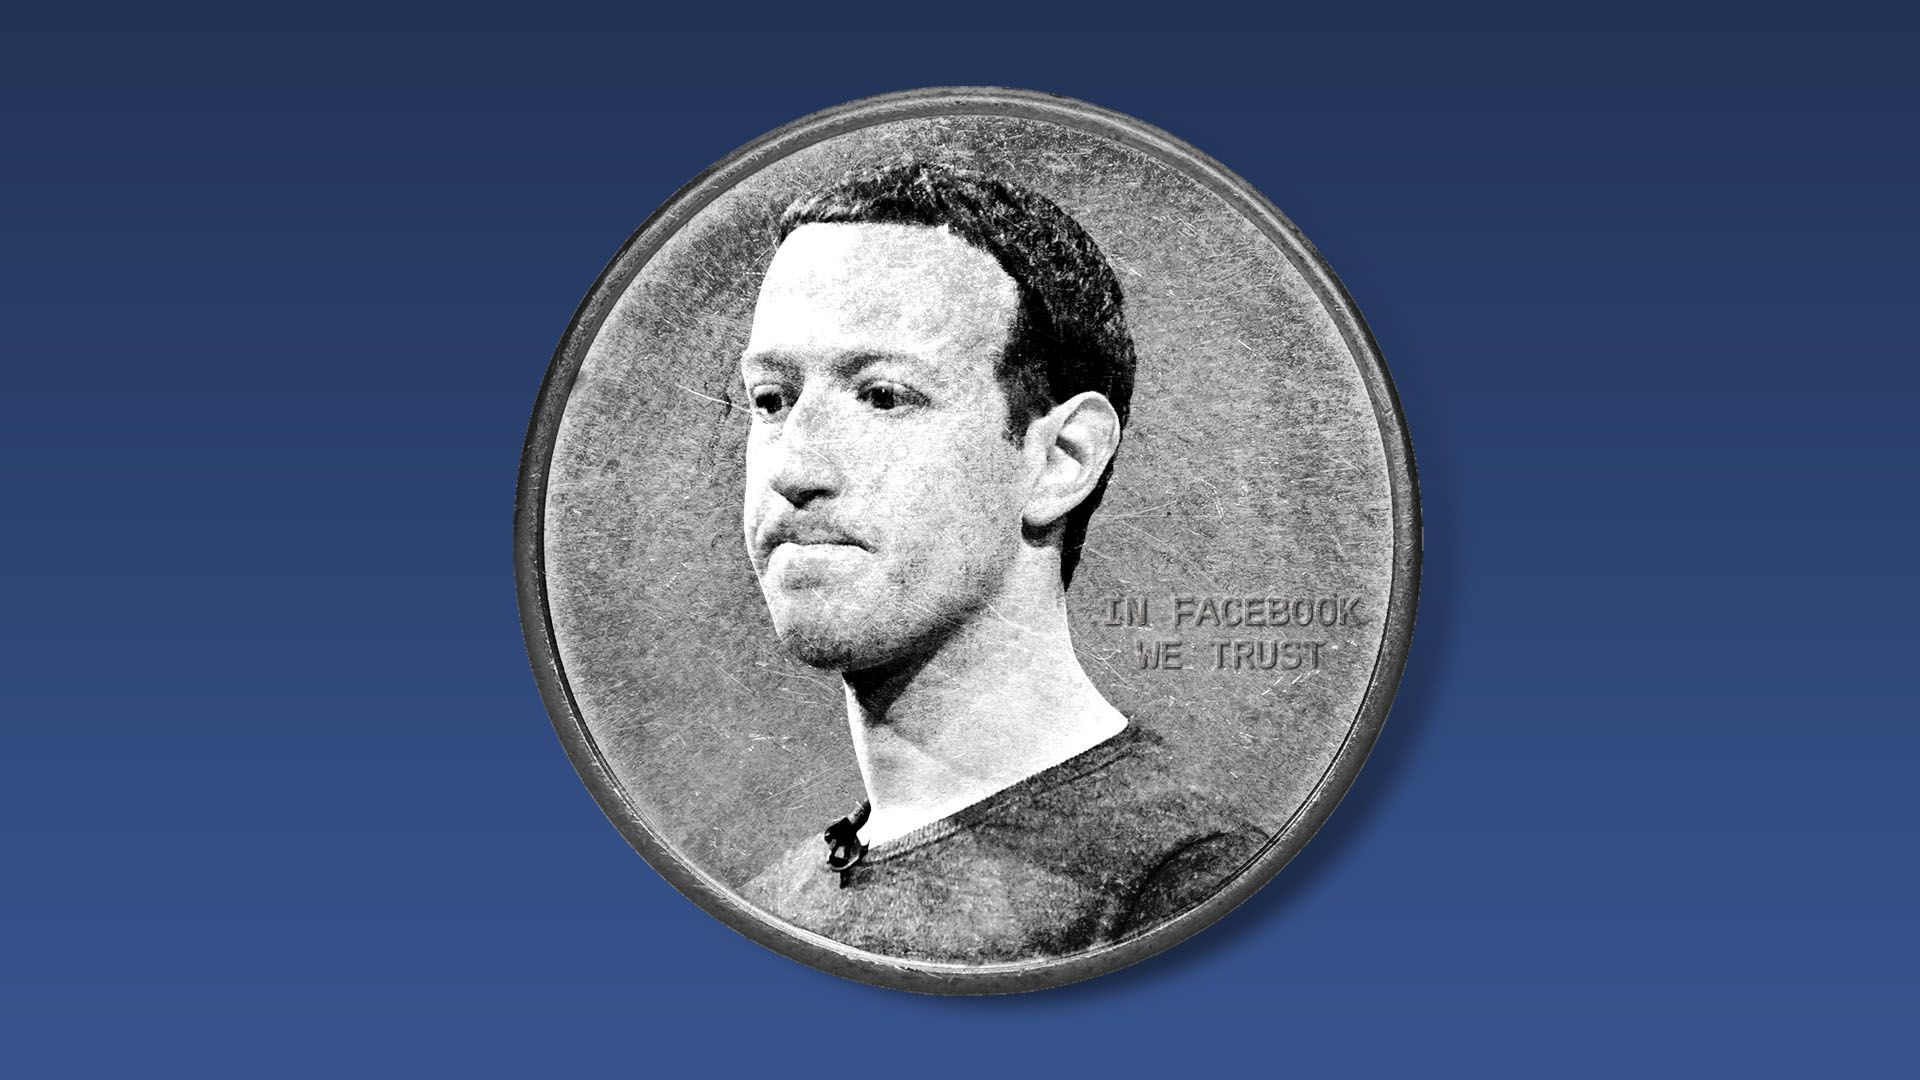 Illustration of a coin with Mark Zuckerberg's face on it